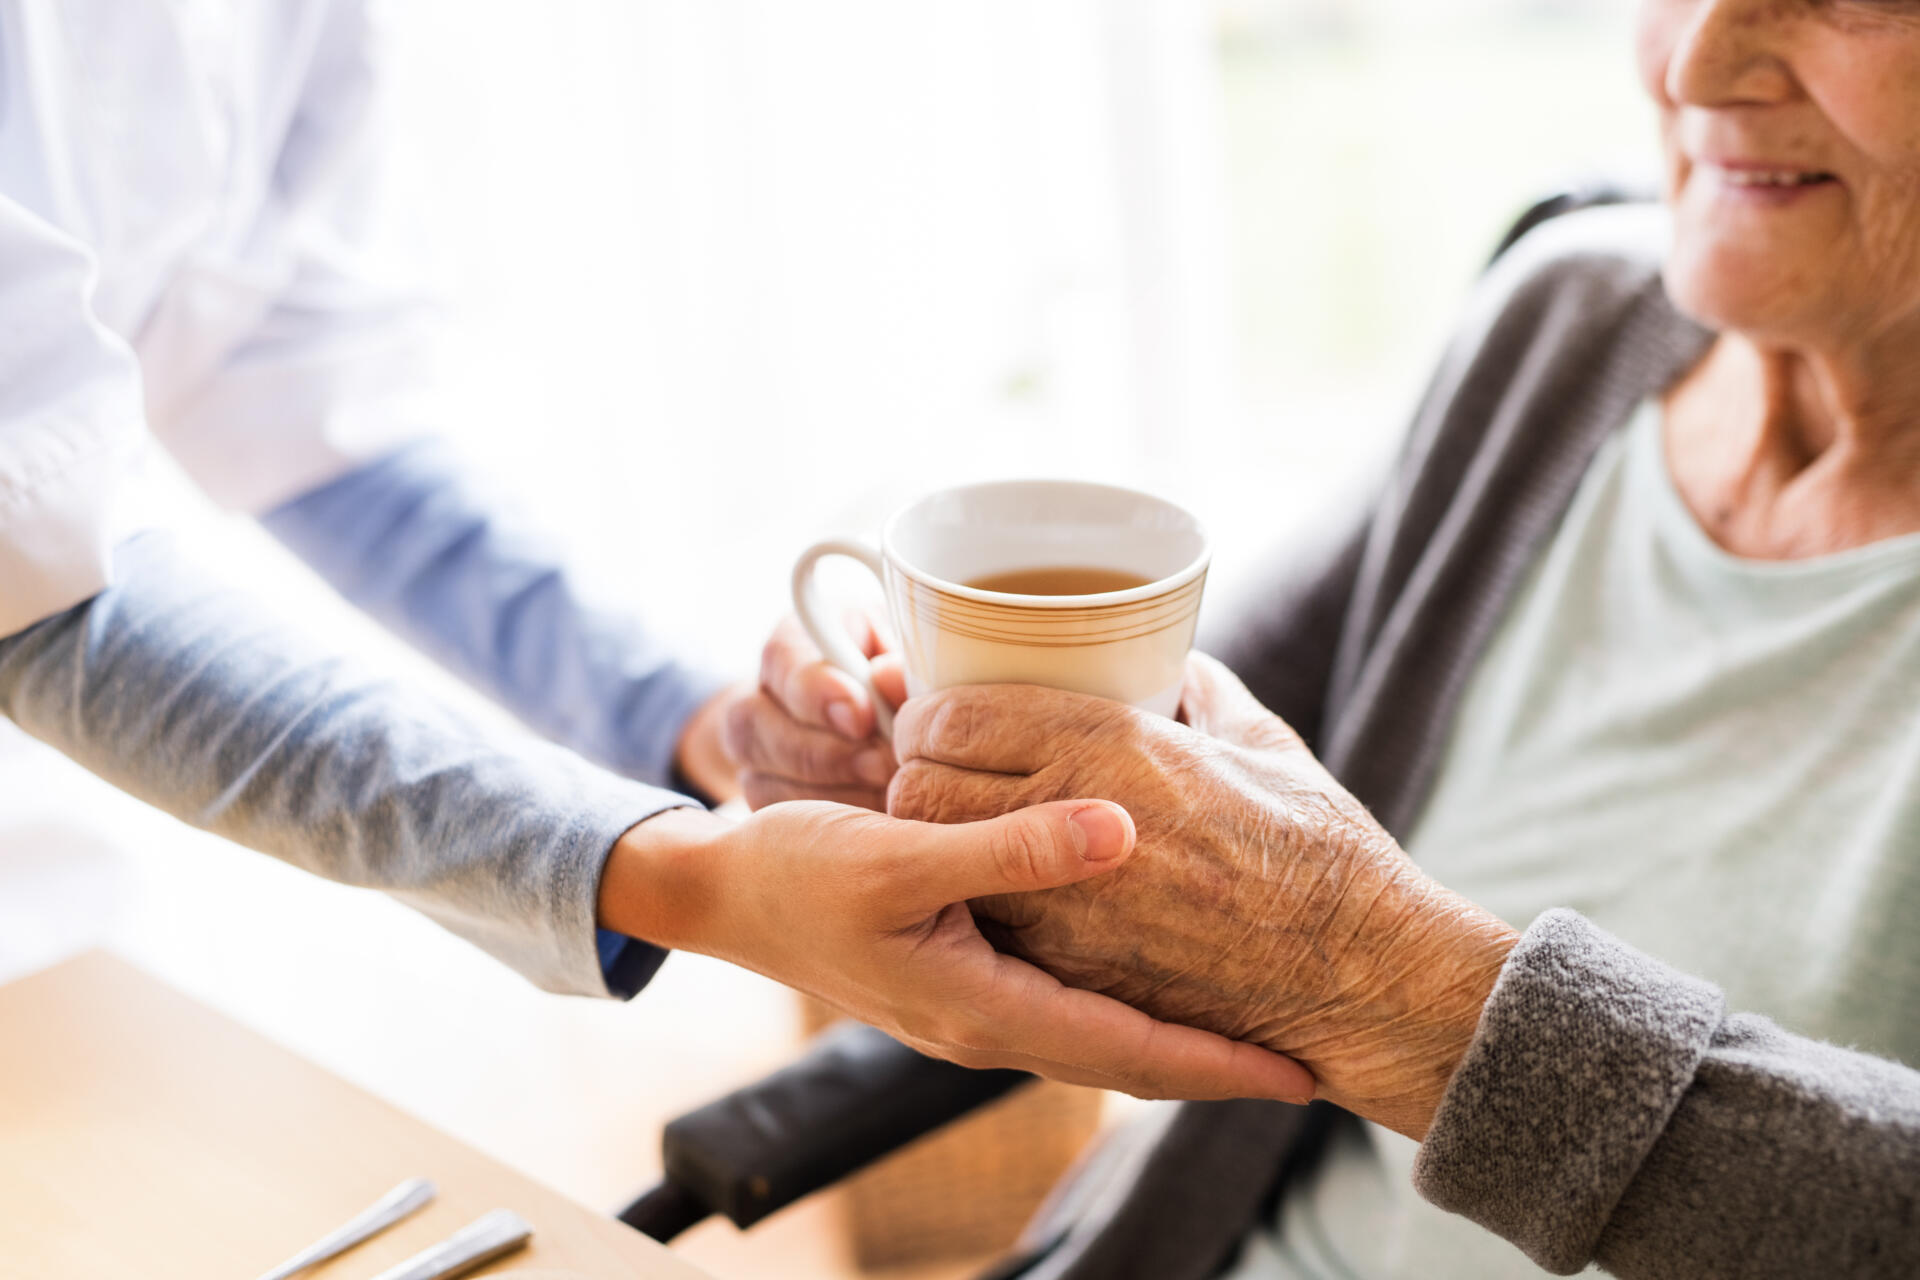 A woman's hands support an eldery person holding a cup of coffee.